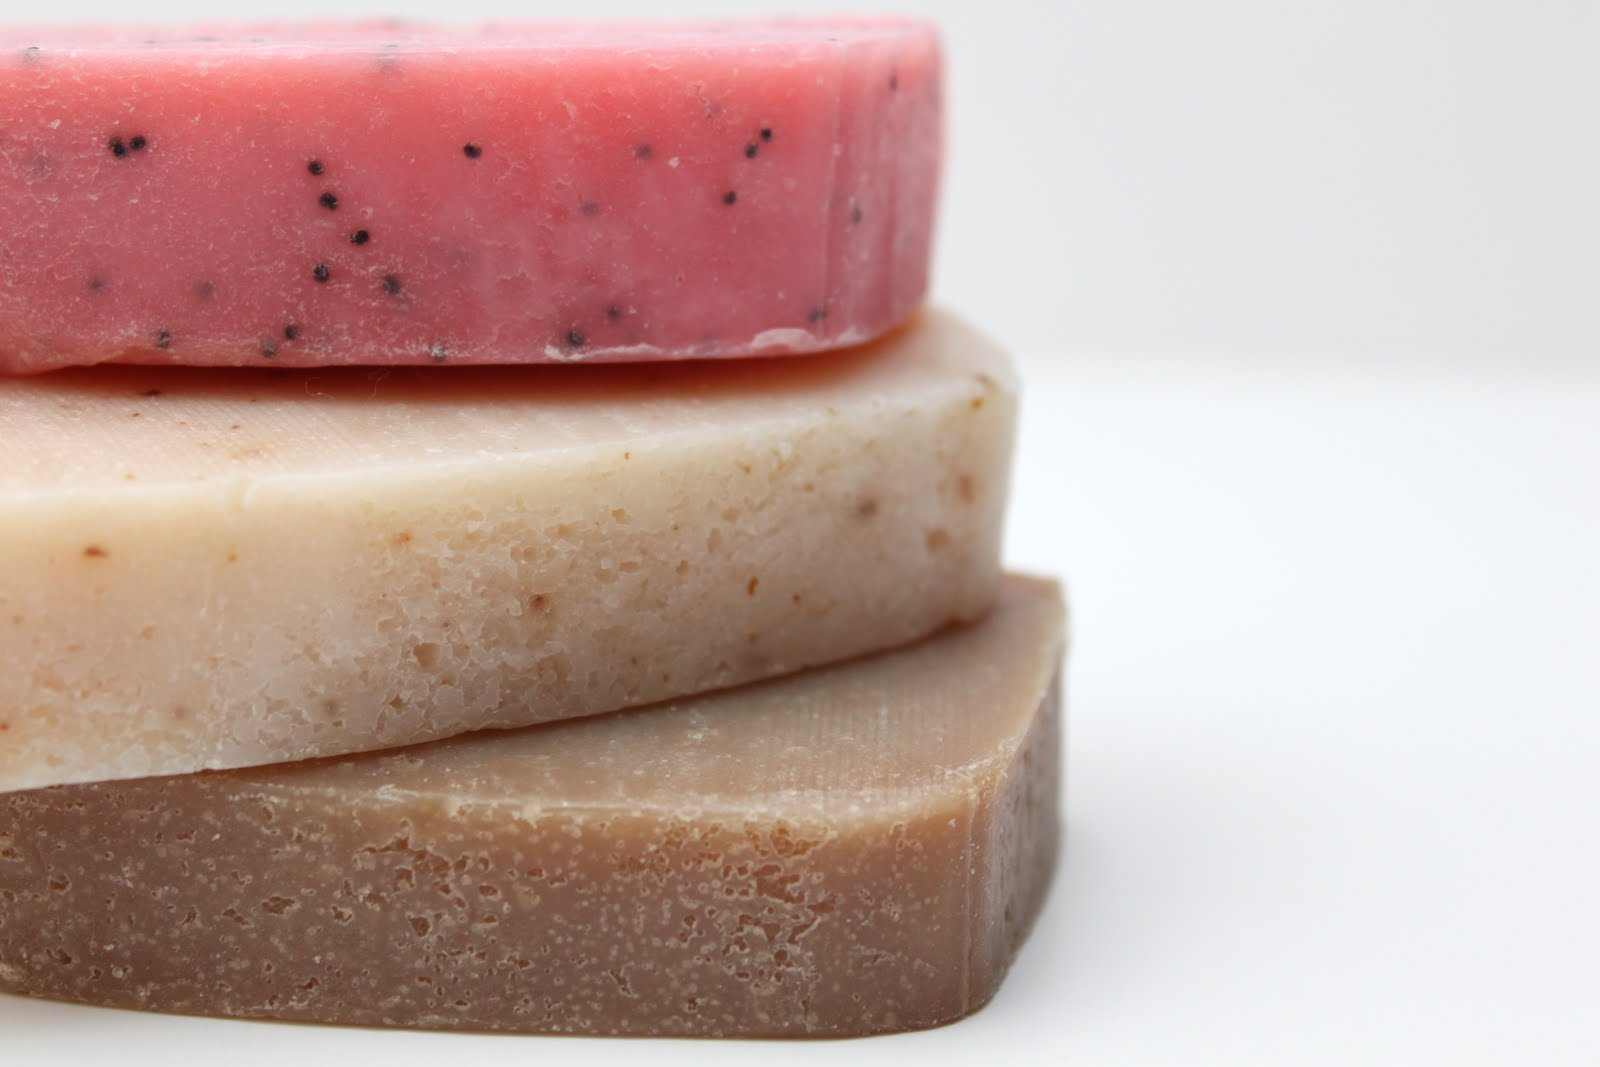 Rachael's Homemade Natural Soap Giveaway!!